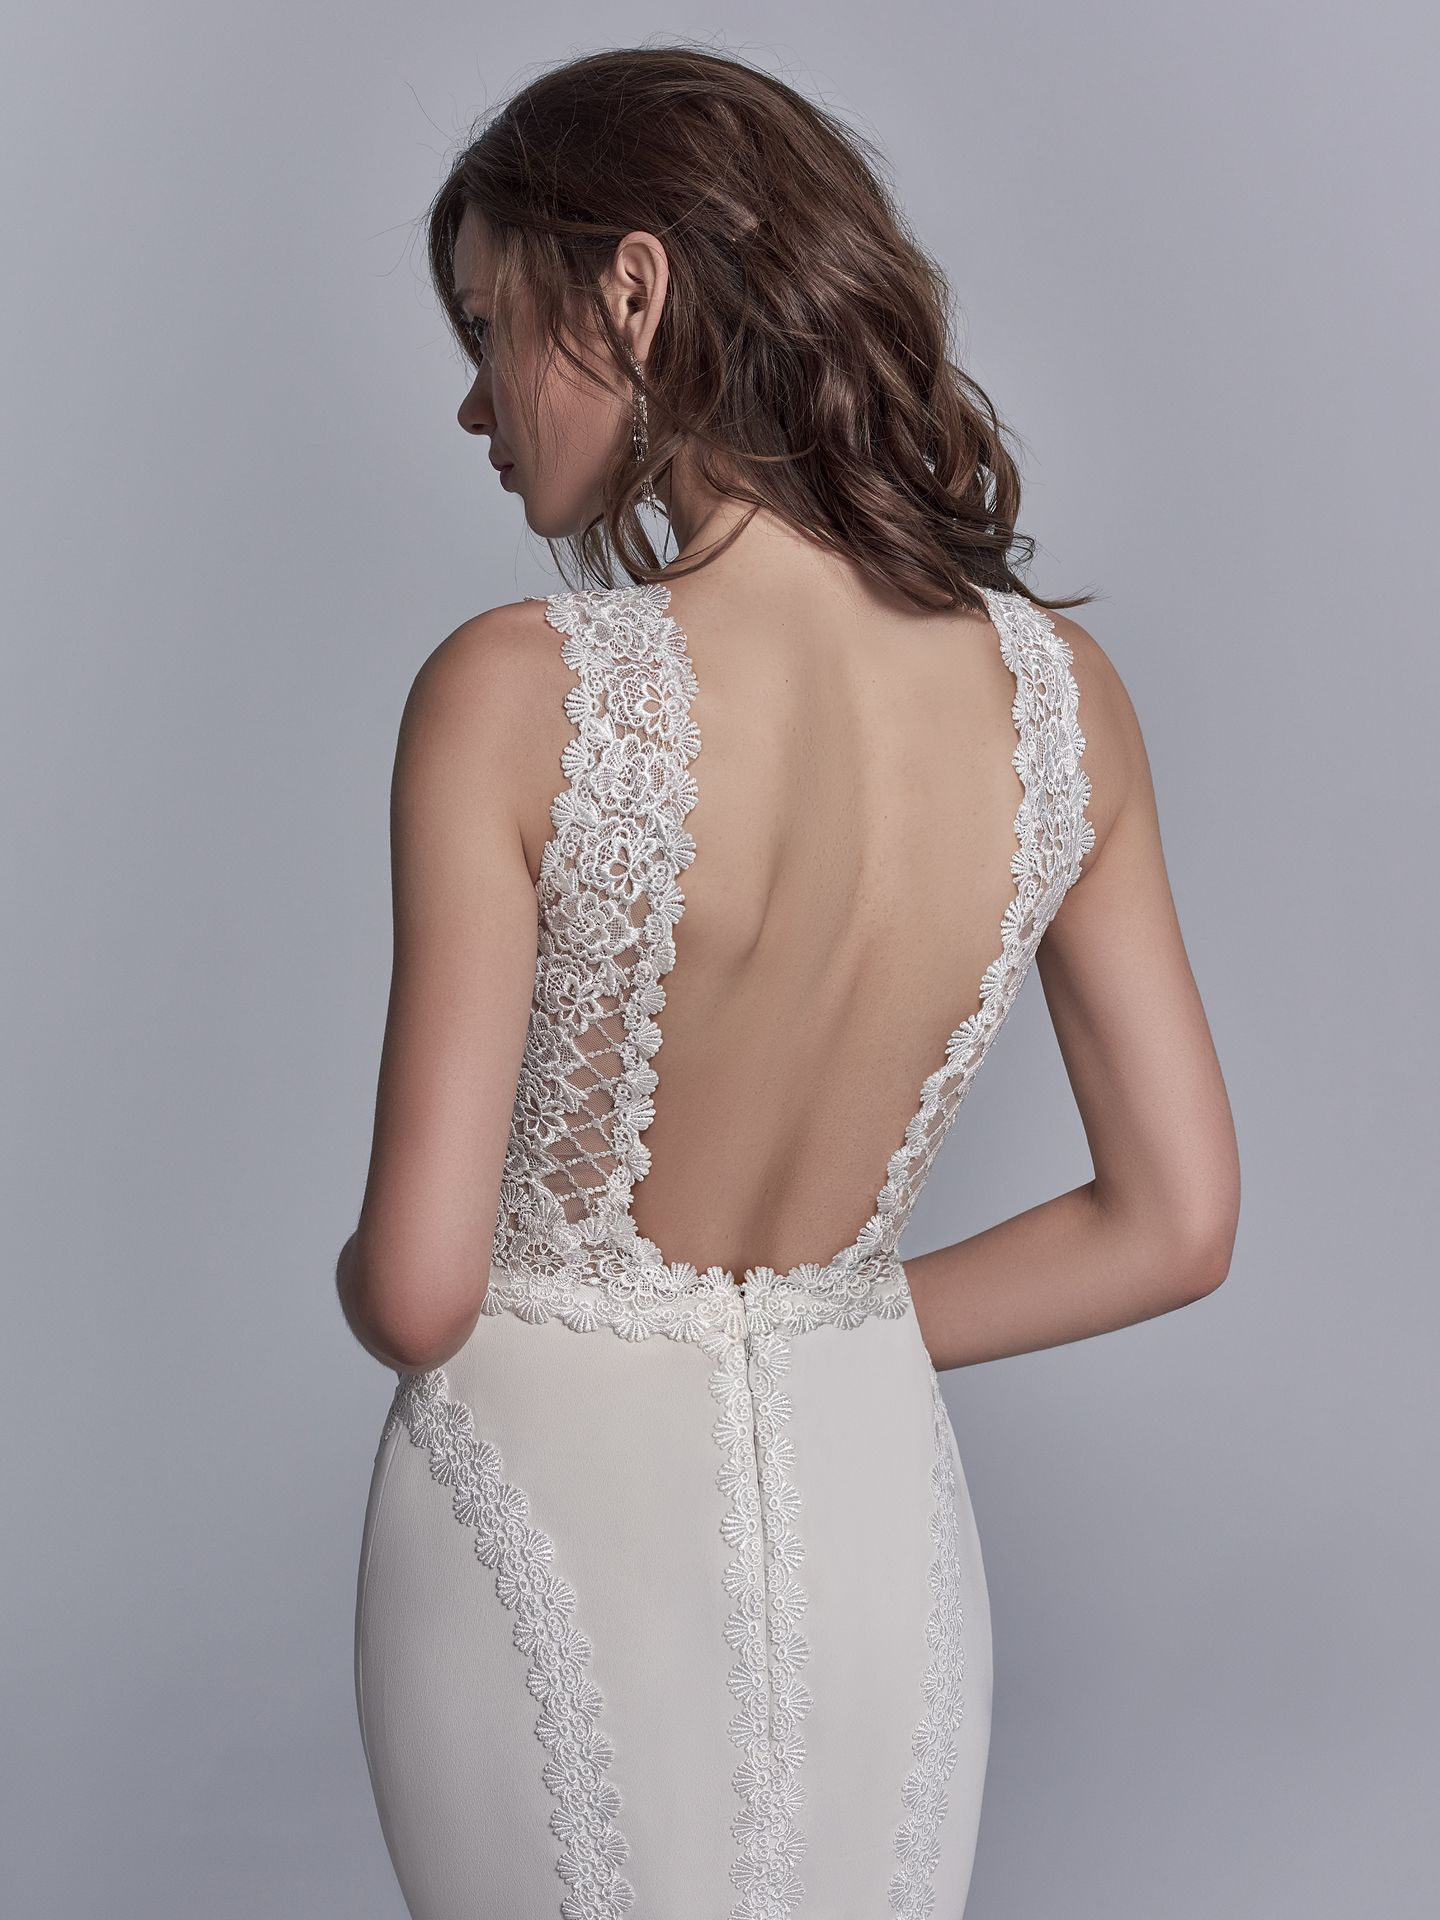 15 Gorgeous Statement-Back Gowns for the Stylish Bride - Barrington boho wedding dress by Sottero & Midgley